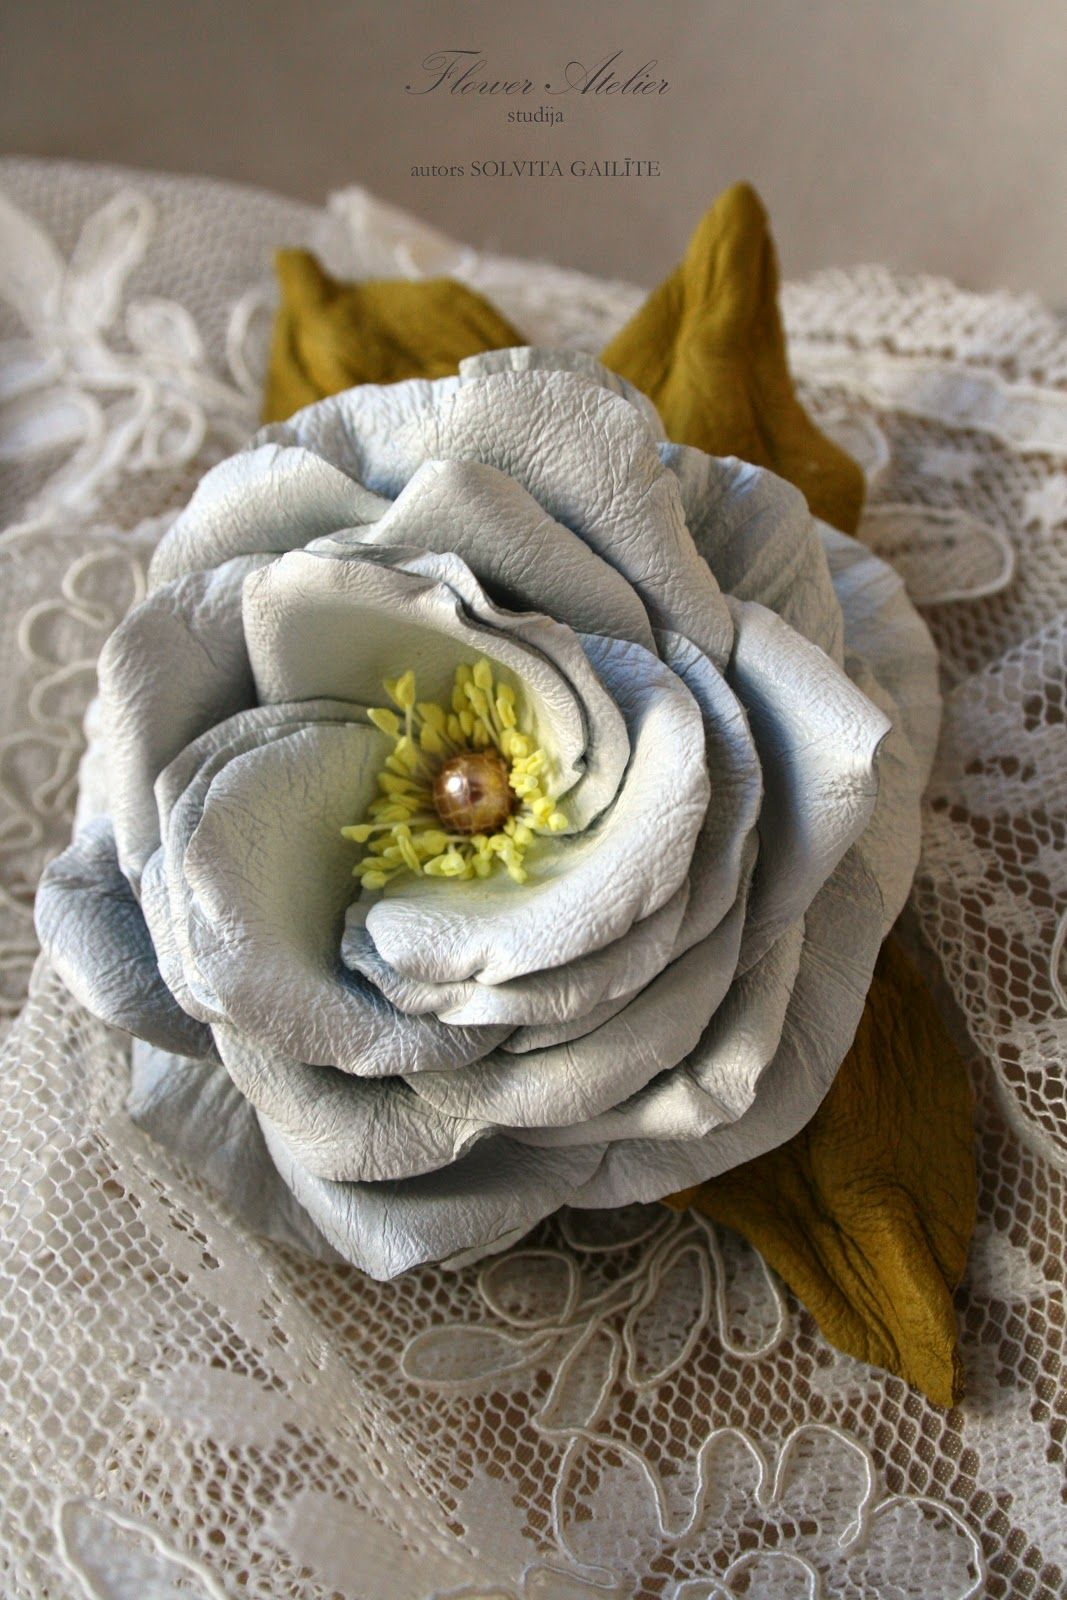 flower atelier | brotches | pinterest | atelier, flower and fabric